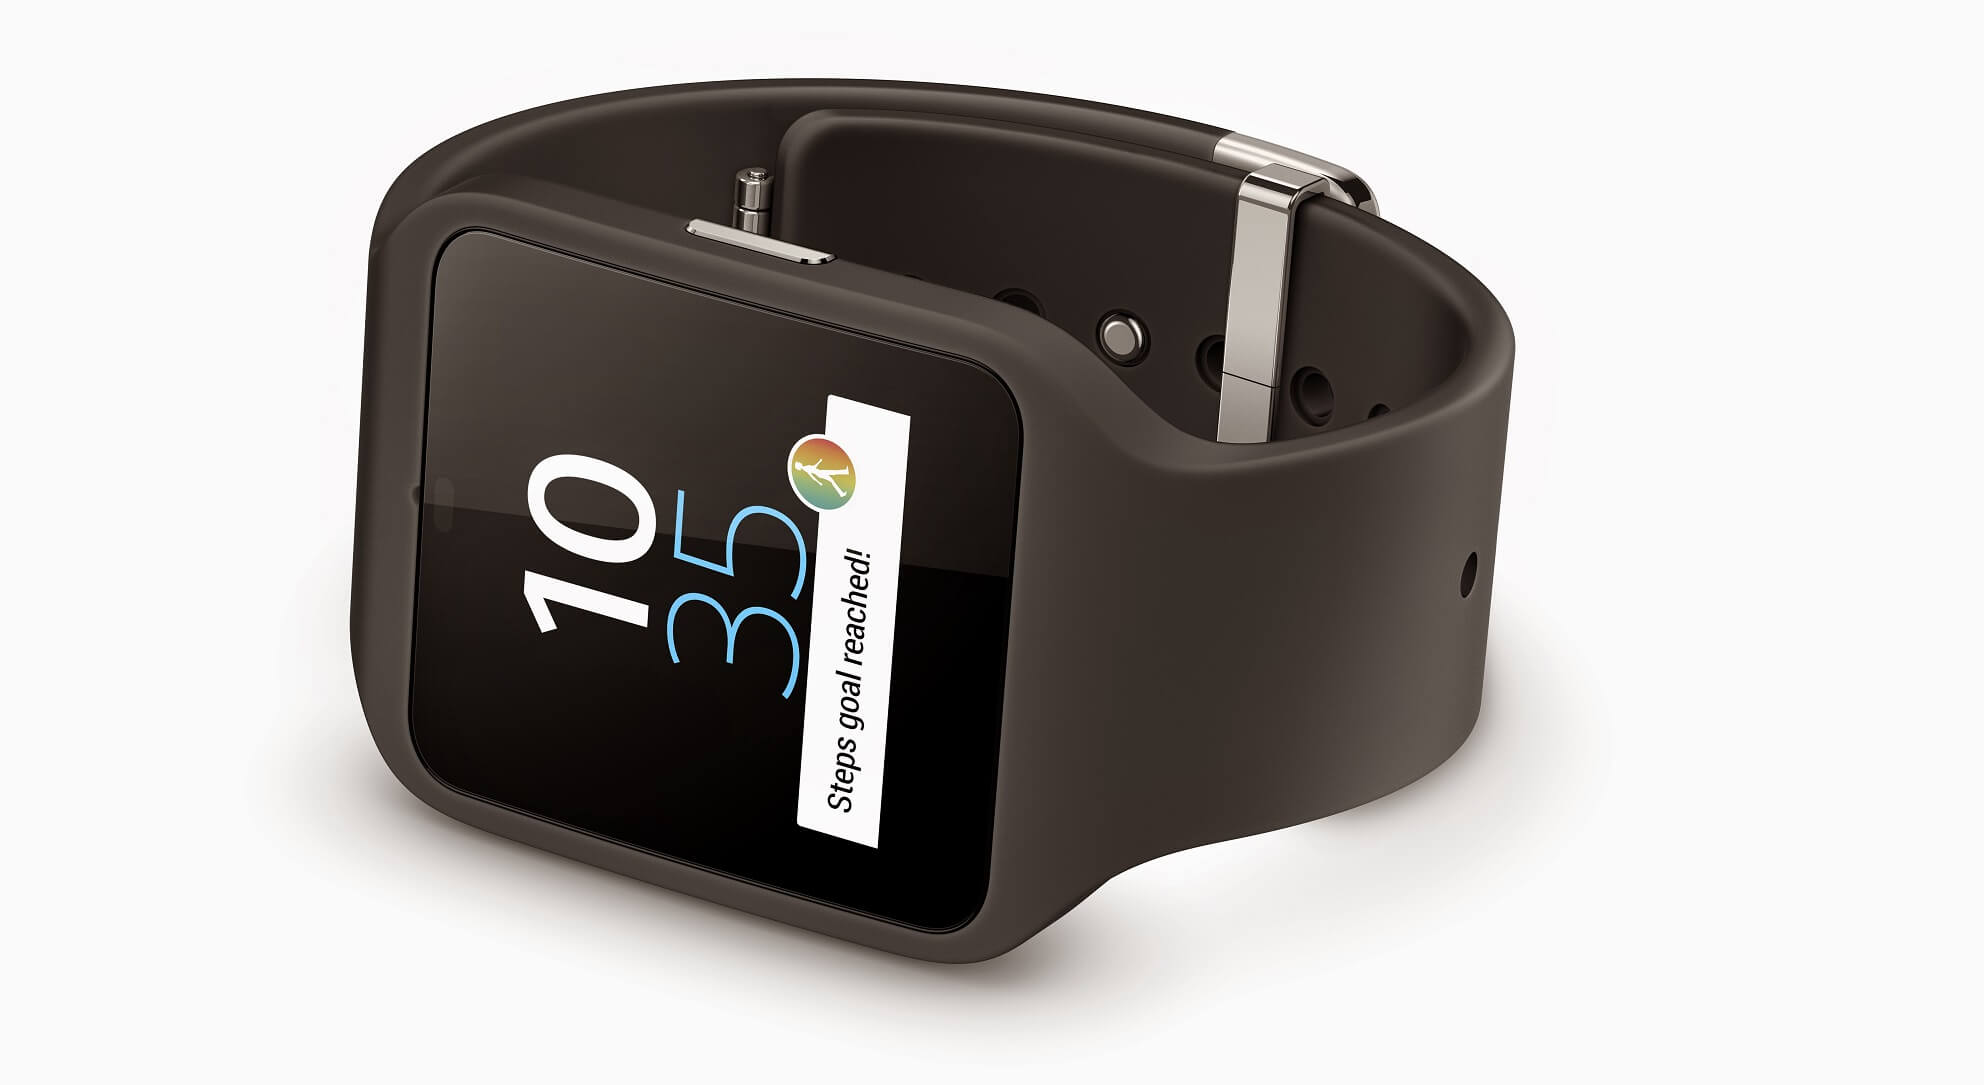 sony smartwatch 3 test preisvergleich. Black Bedroom Furniture Sets. Home Design Ideas